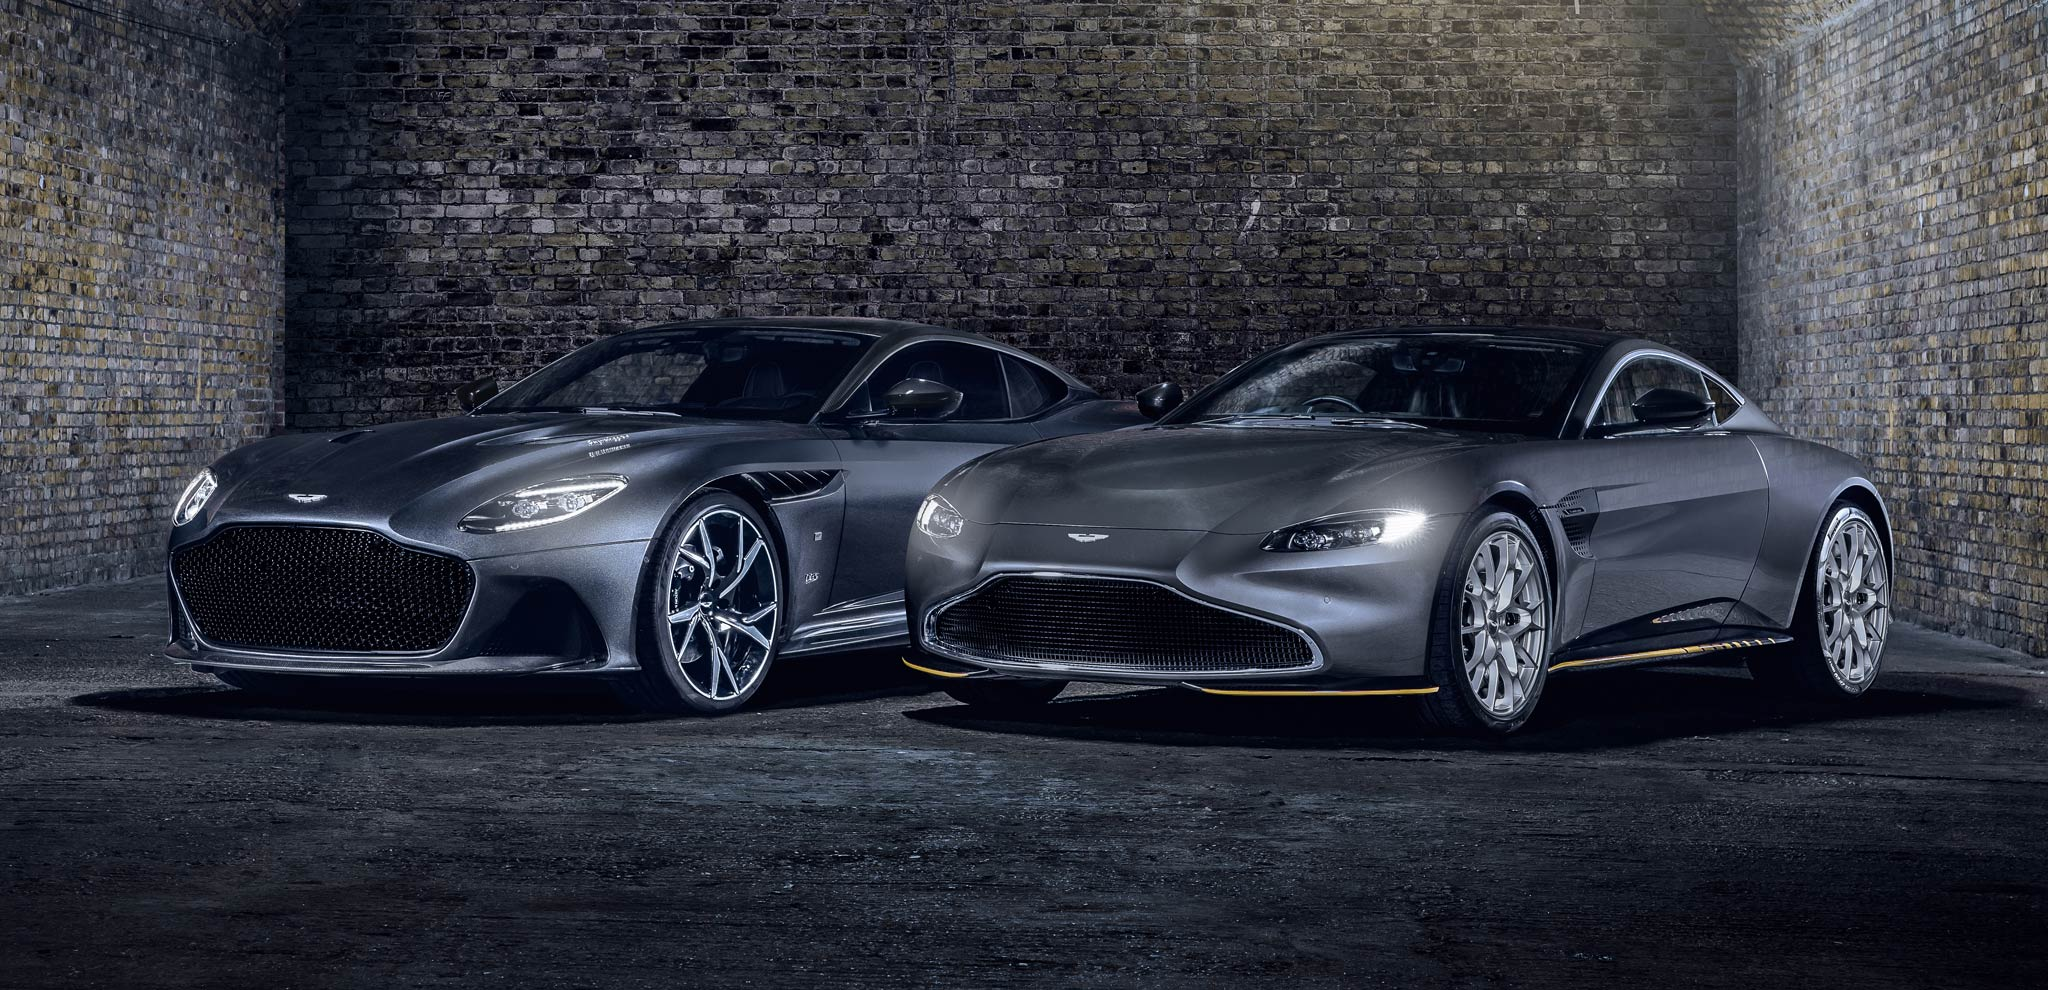 Aston Martin 007 Vantage and 007 Superleggera Special Editions